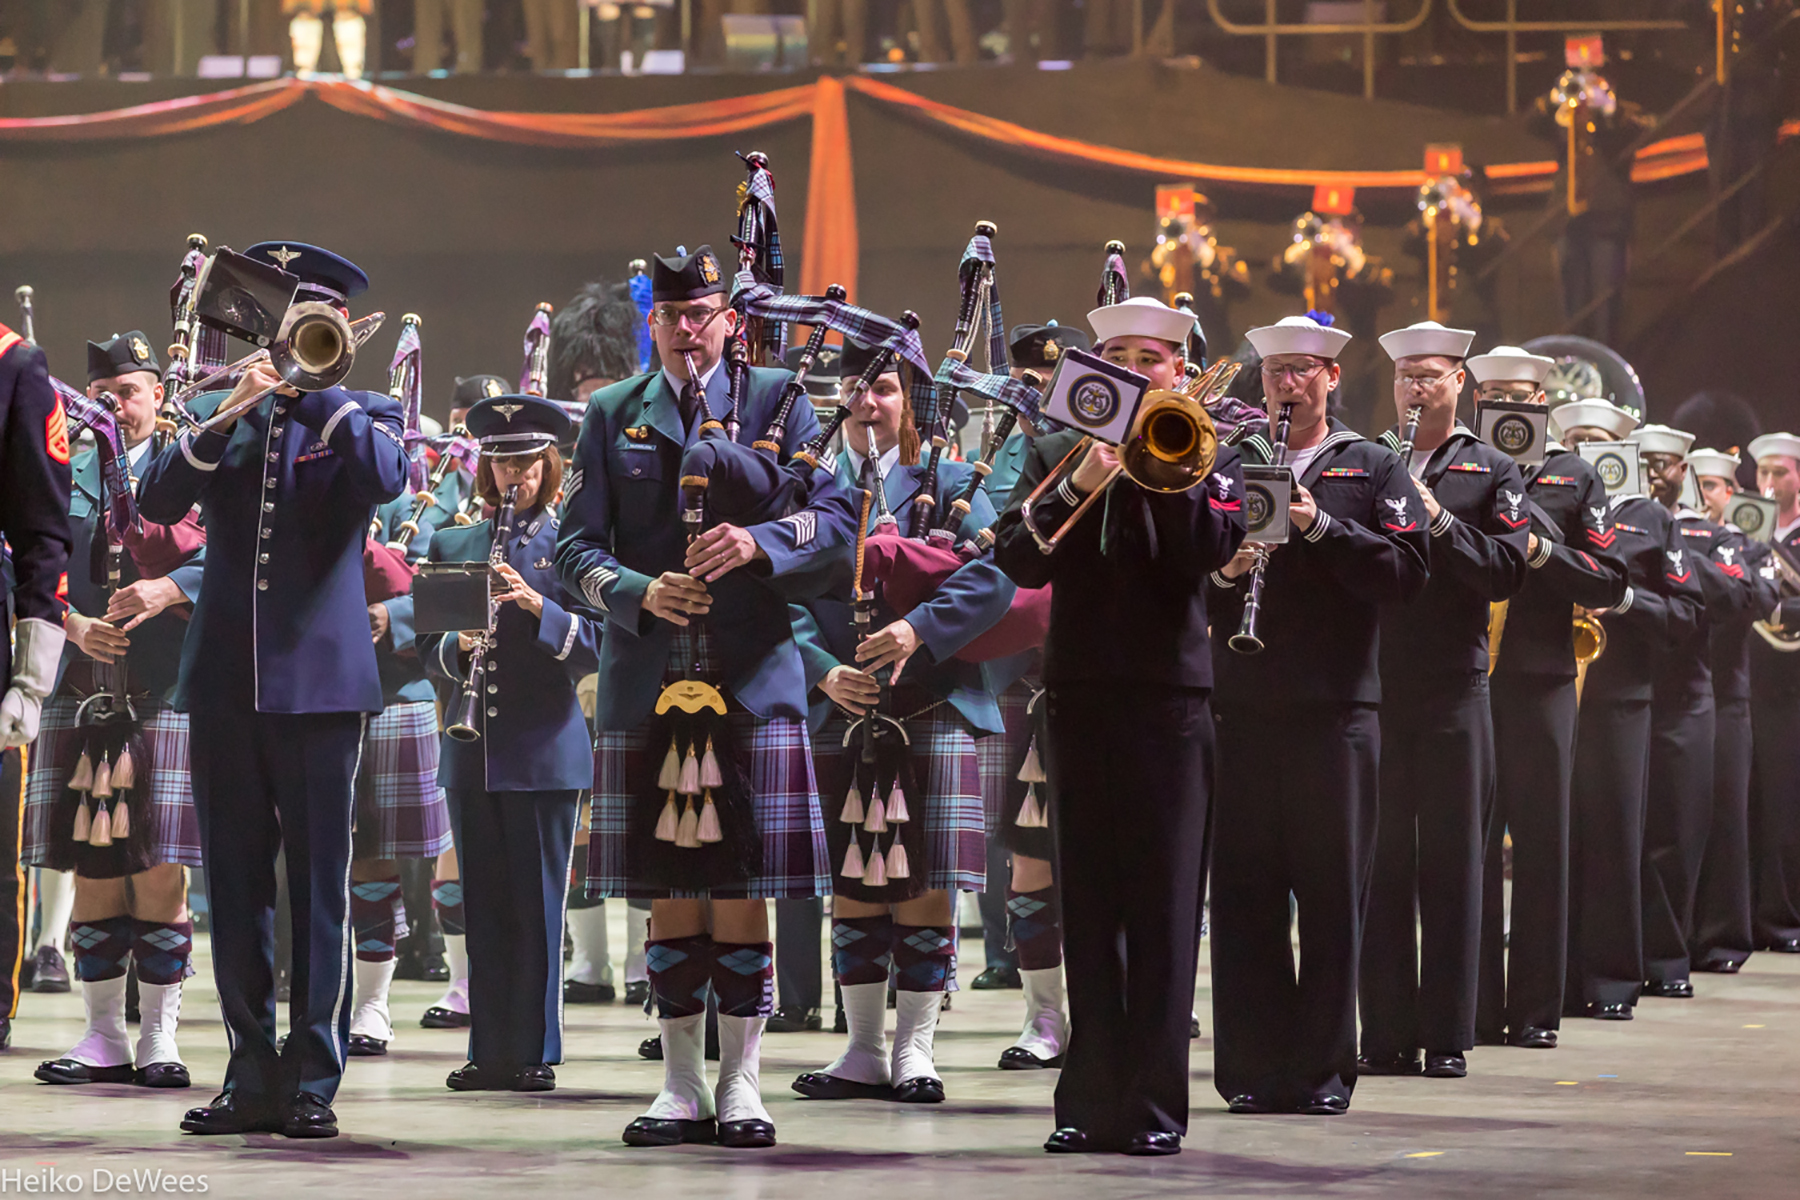 RCAF Pipe Major Josh McFarlane, from 8 Wing Trenton, Ontario, is flanked by U.S. Air Force and Navy musicians during the 2017 Virginia Tattoo. An open-class professional competitive piper hailing from Cambridge, Ontario, Sergeant McFarlane served with the RCAF Band at 17 Wing Winnipeg, Manitoba, before being posted to 8 Wing. PHOTO: Heiko DeWees